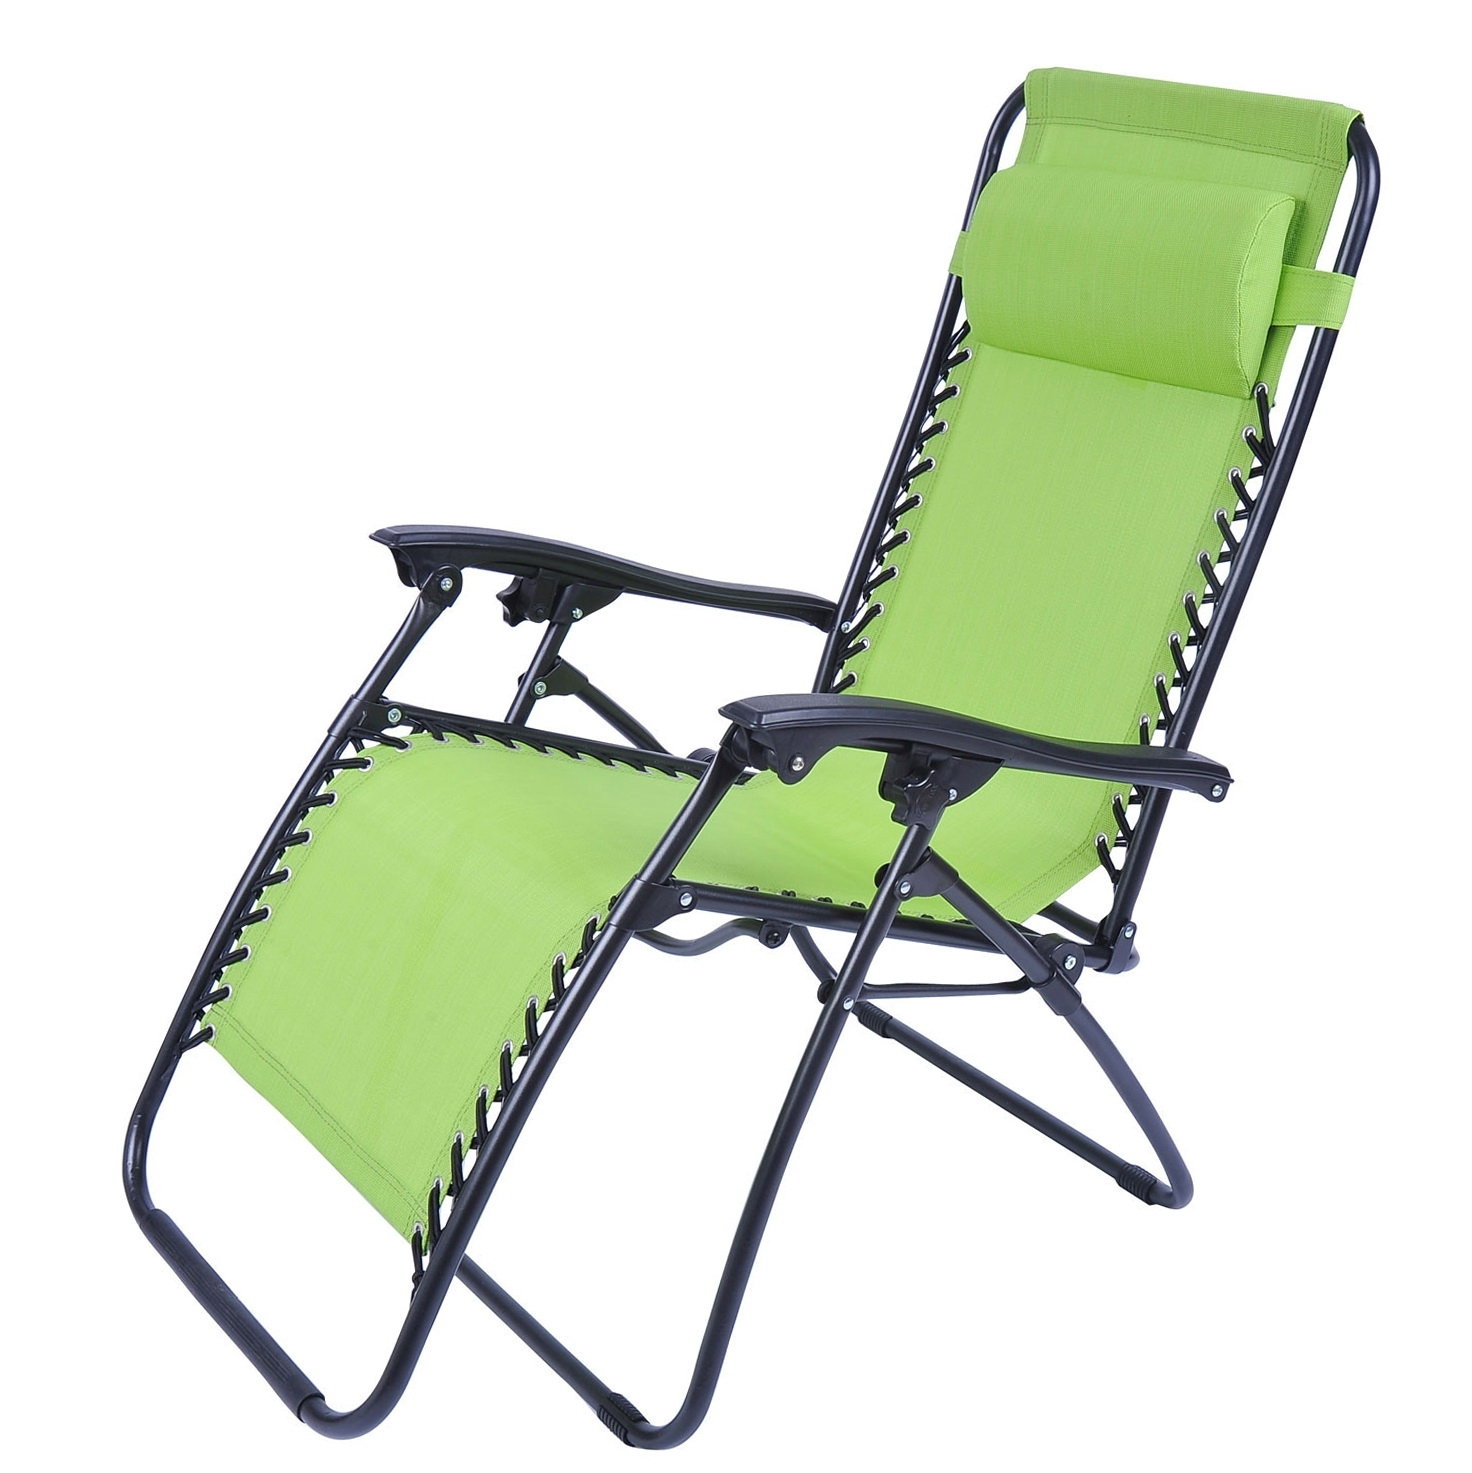 Chaise Lounge Folding Chairs With Best And Newest Folding Chaise Lounge Chair Patio Outdoor Pool Beach Lawn Recliner (View 5 of 15)